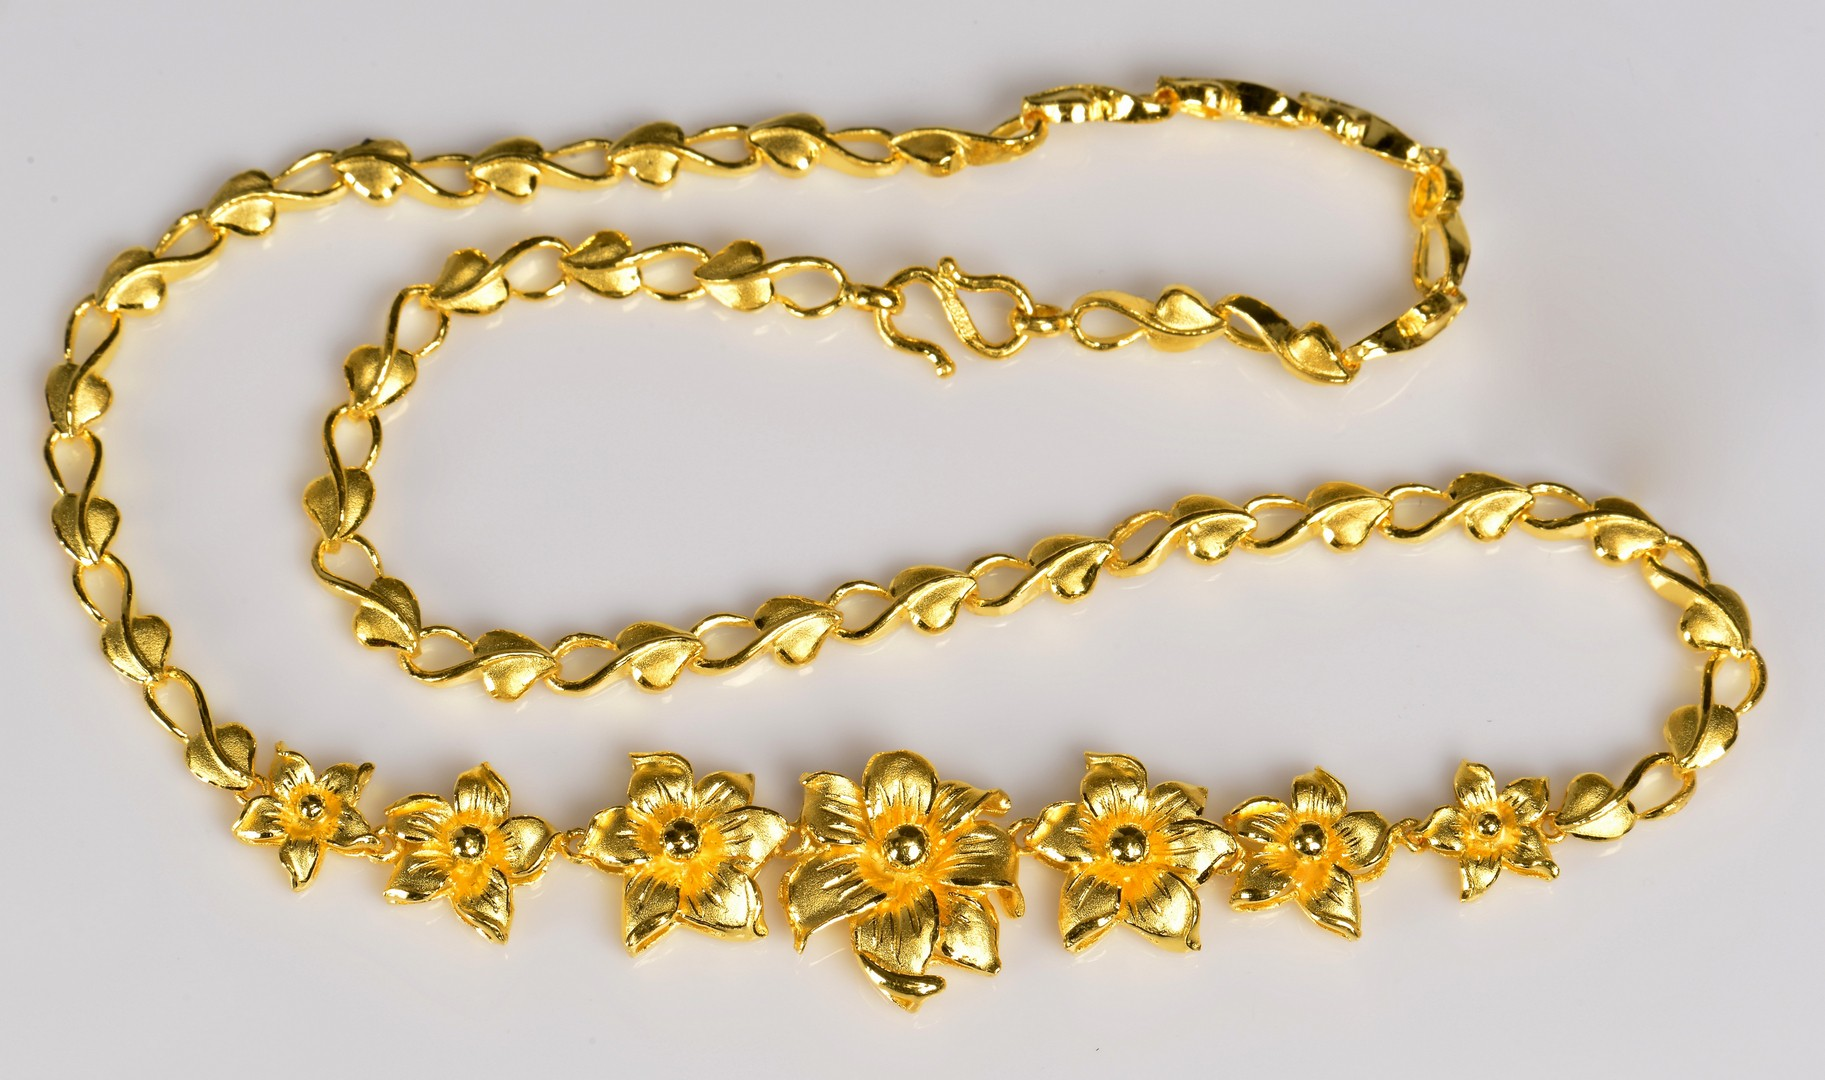 Lot 65: 24K Chinese Necklace, 40.6 grams